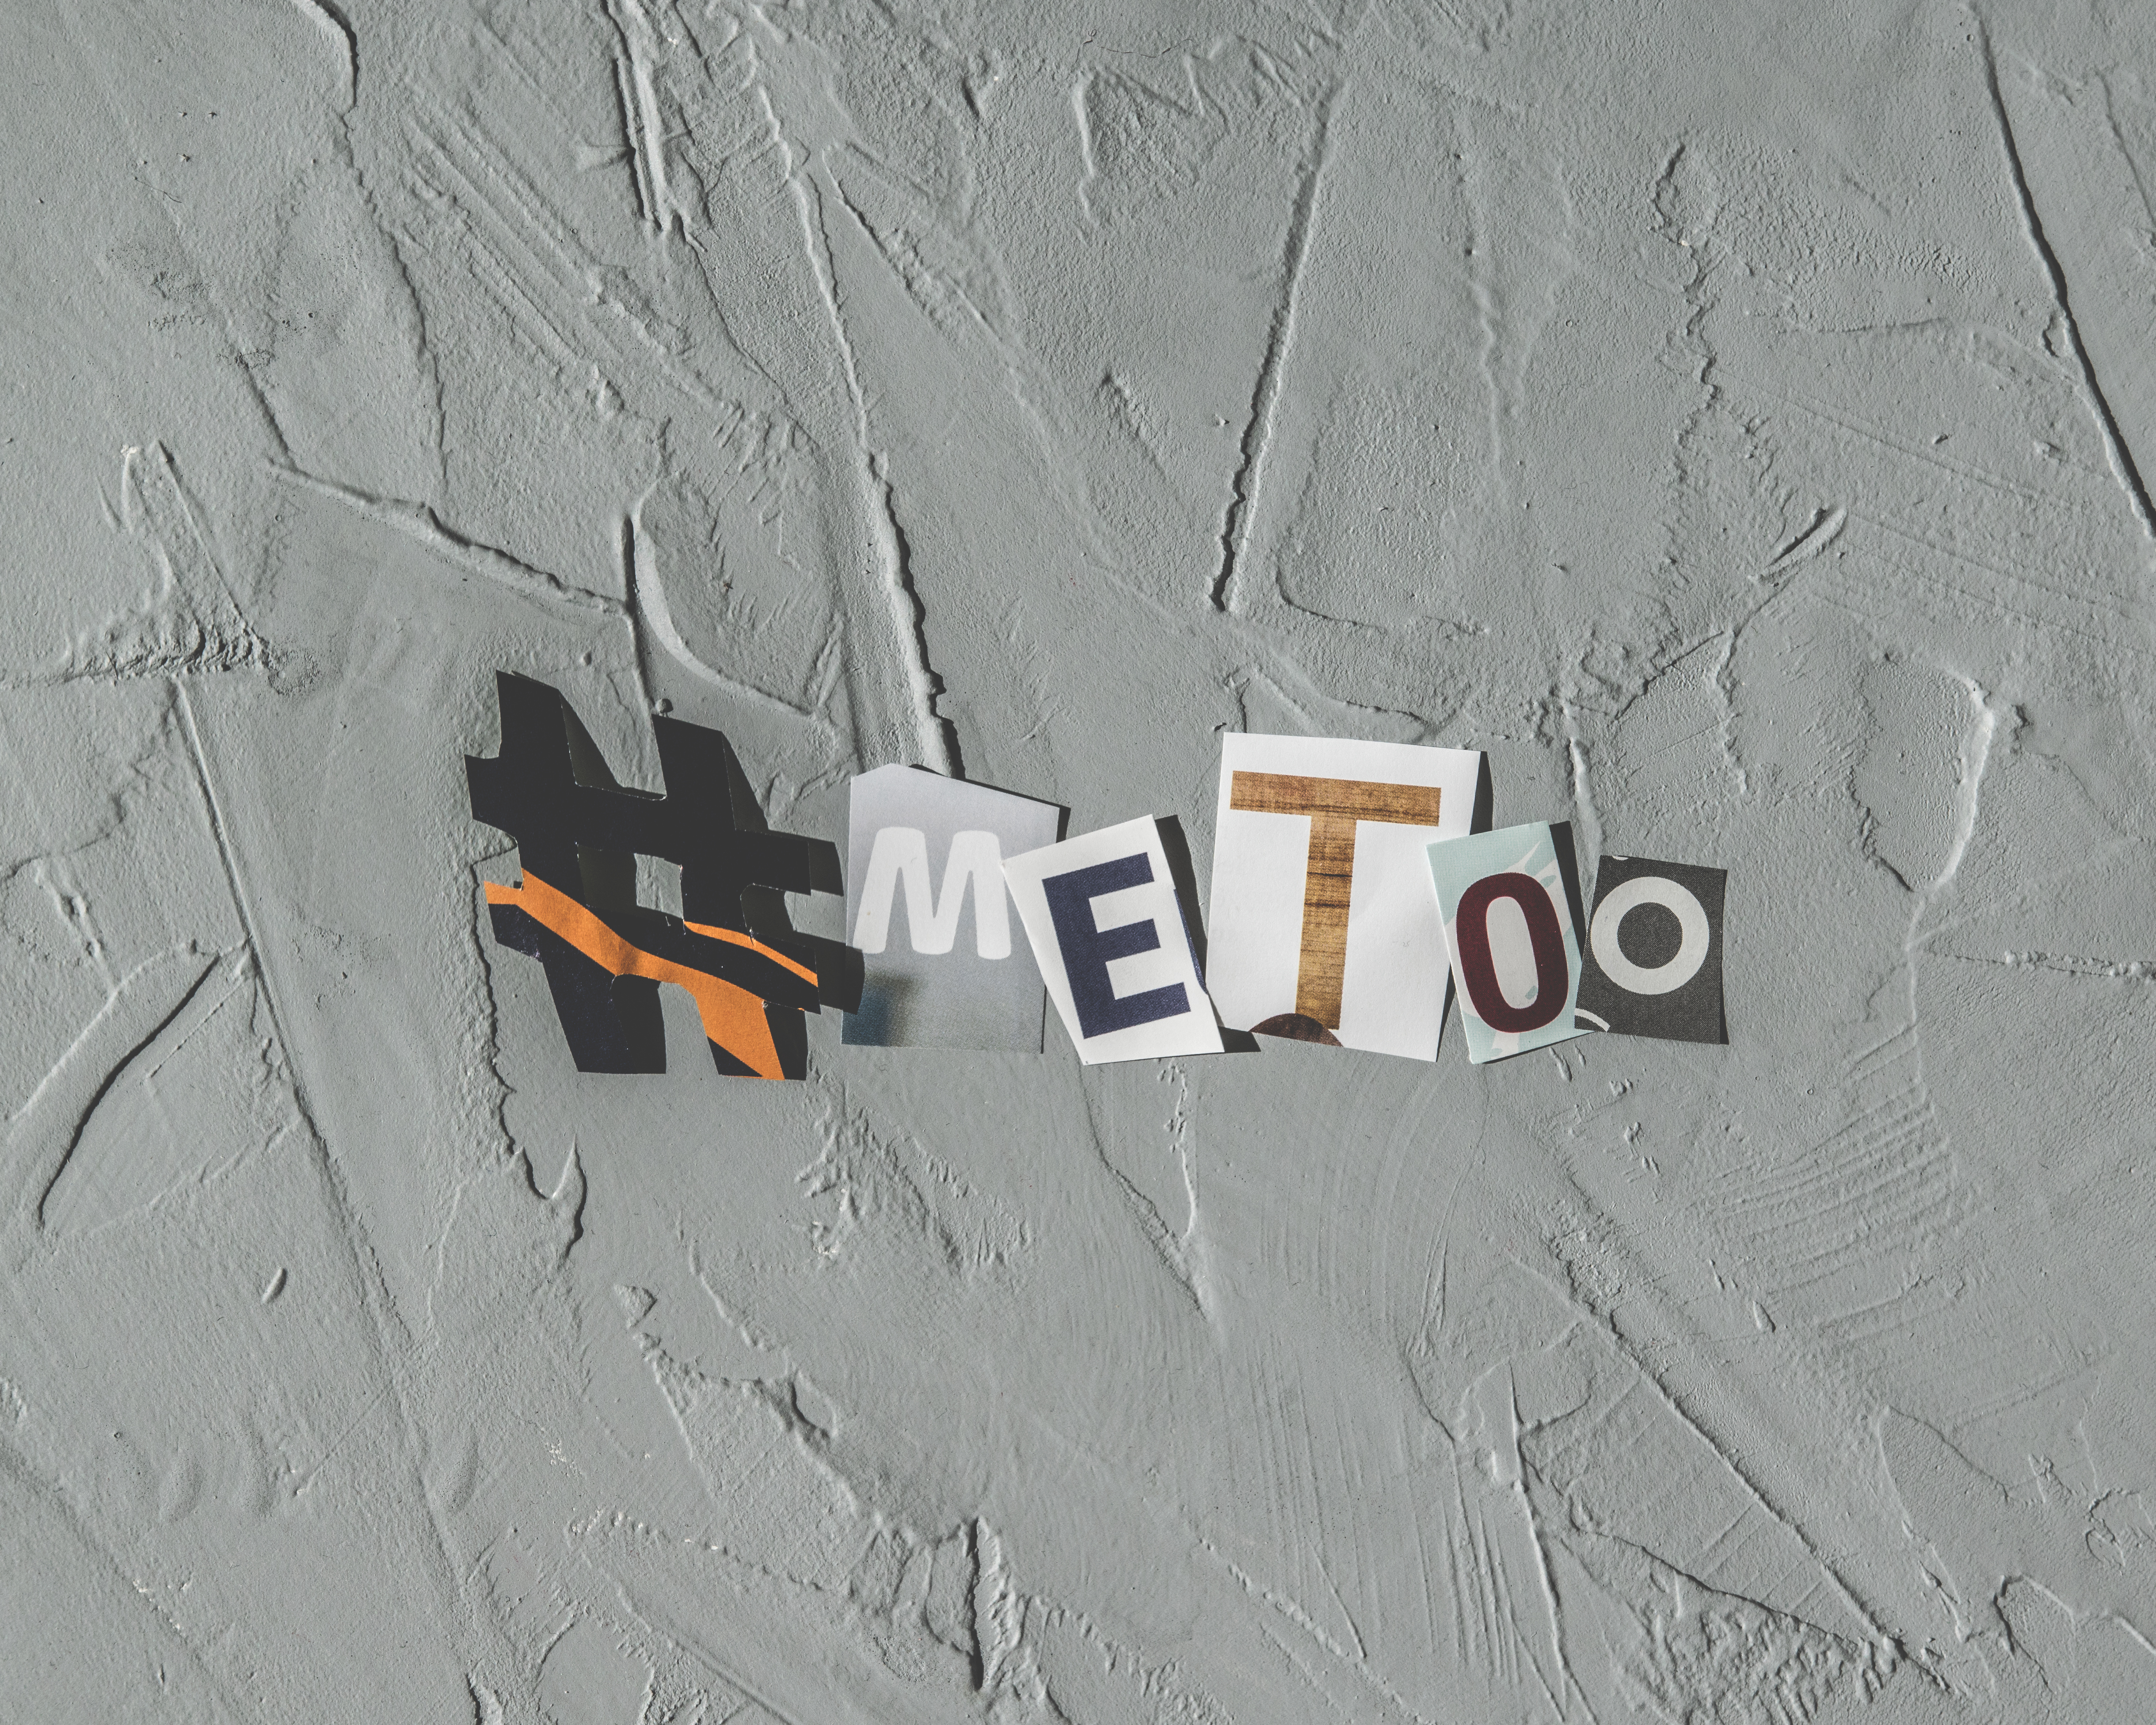 We should start a #wetoo campaign.